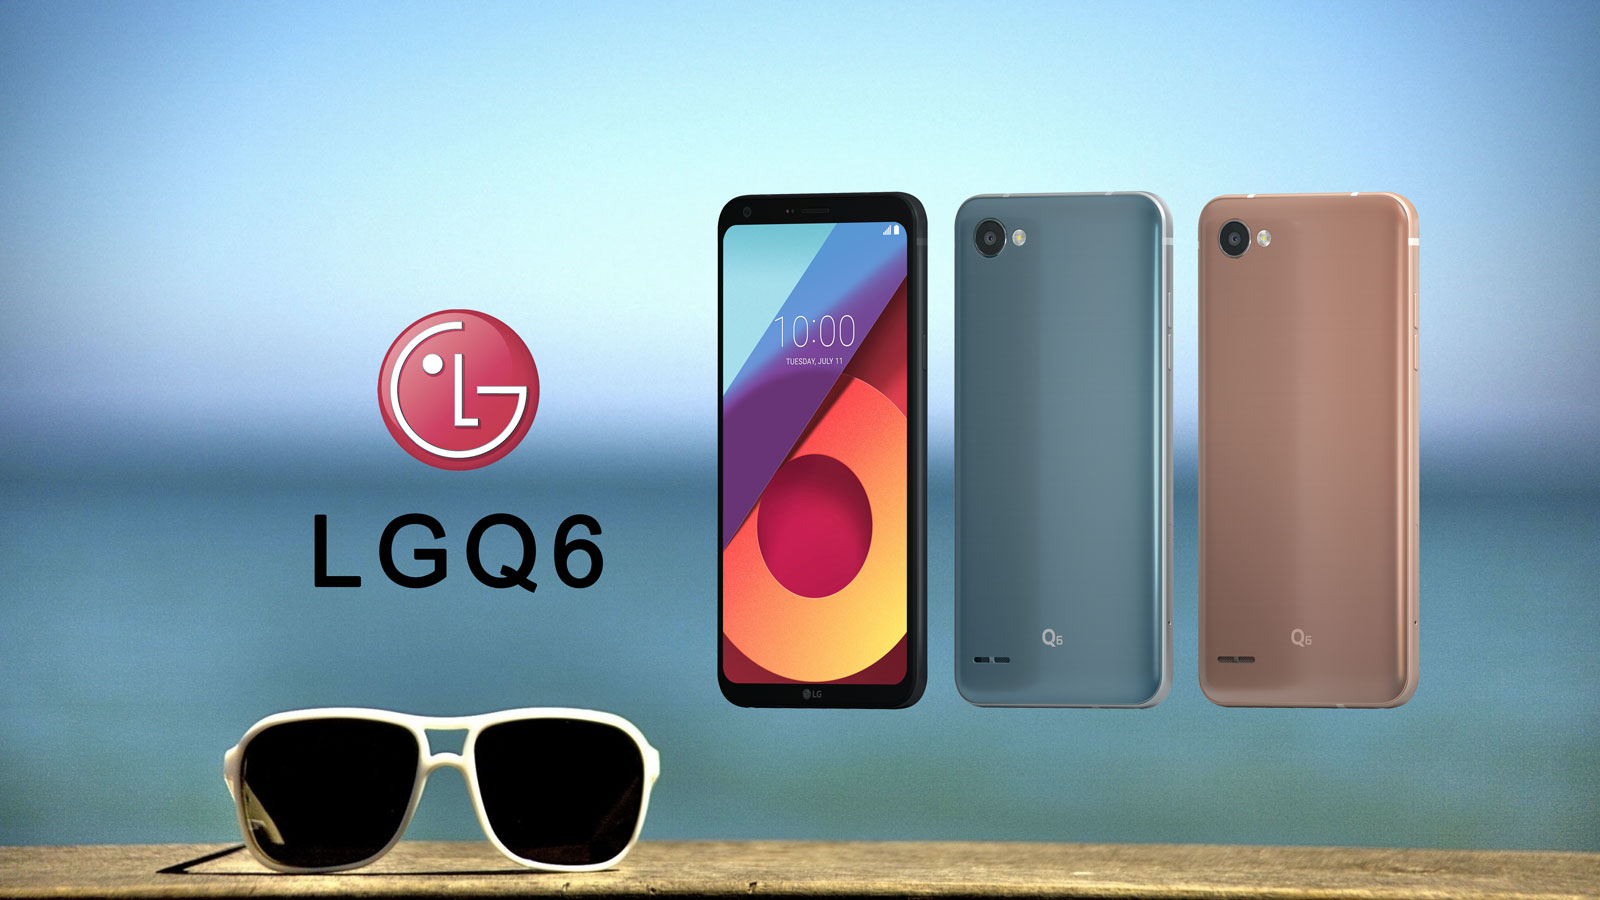 The new LG Q6 is now available in the Philippines!